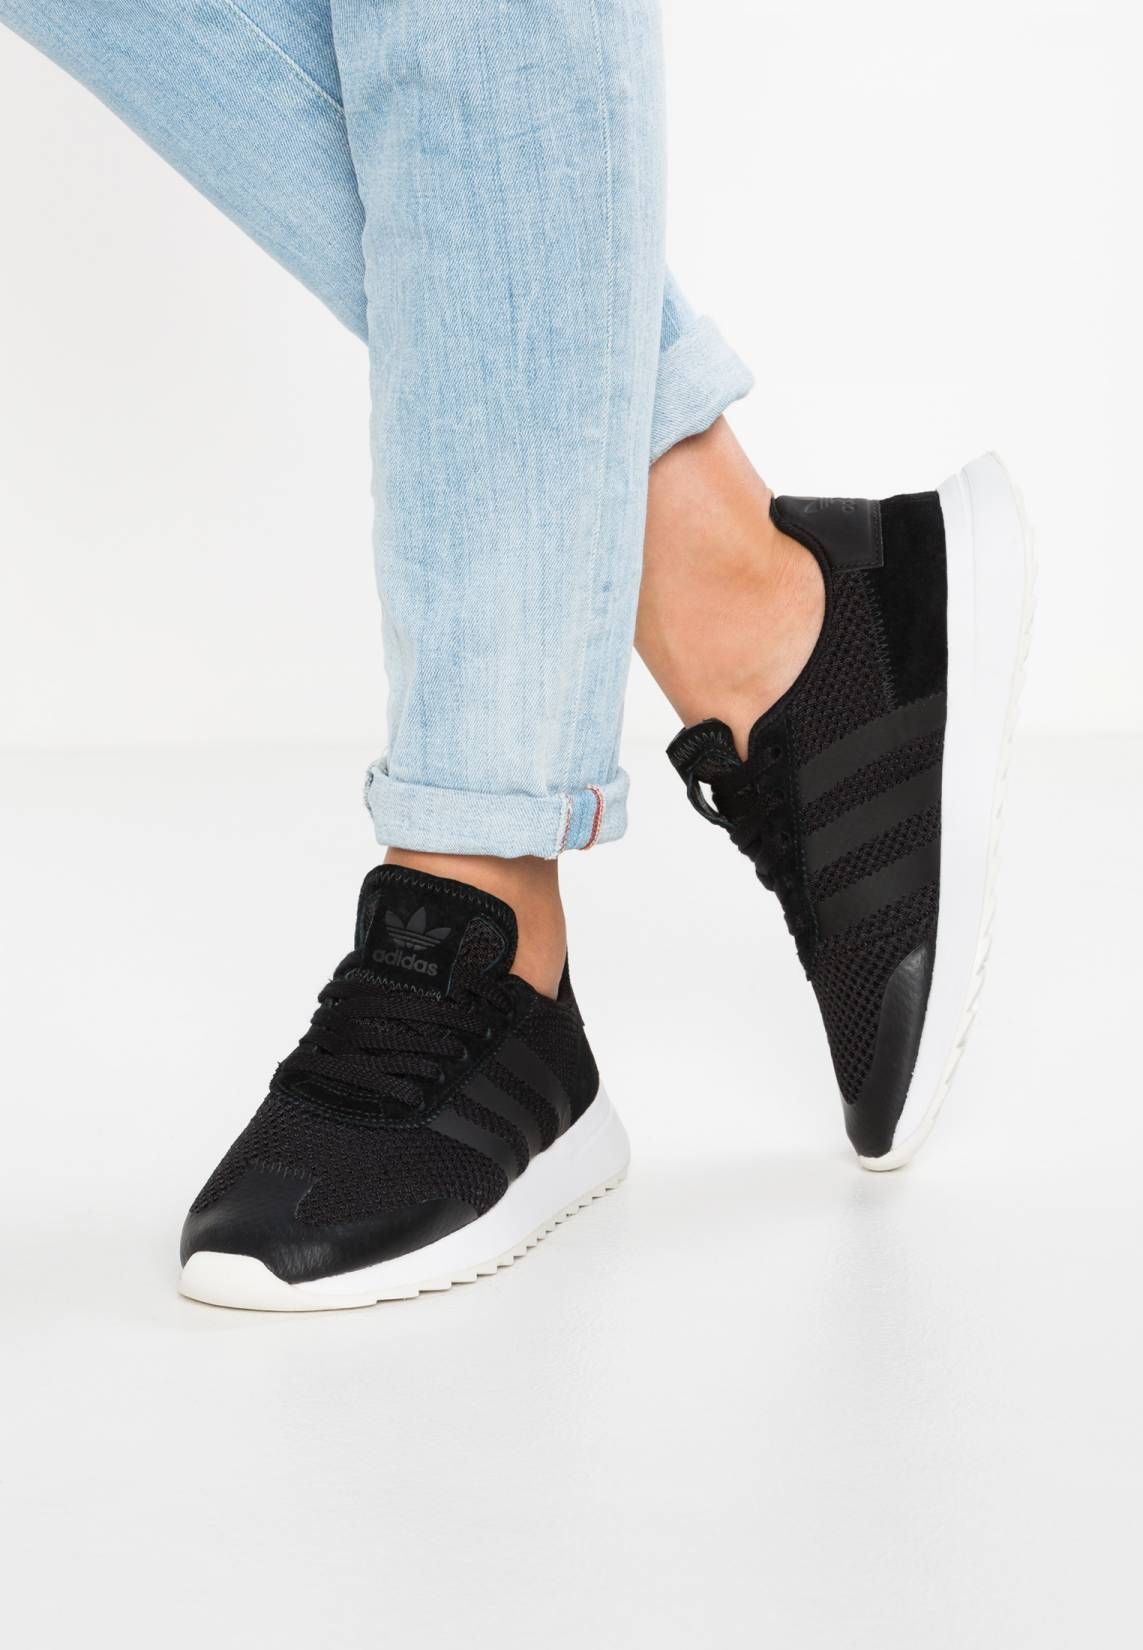 reputable site 6f6bf 7f3ec adidas Originals. FLASHBACK - Trainers - core blackwhite. Patternplain.  Care instructionstreat with a suitable protector before wear.  Solesynthetics.